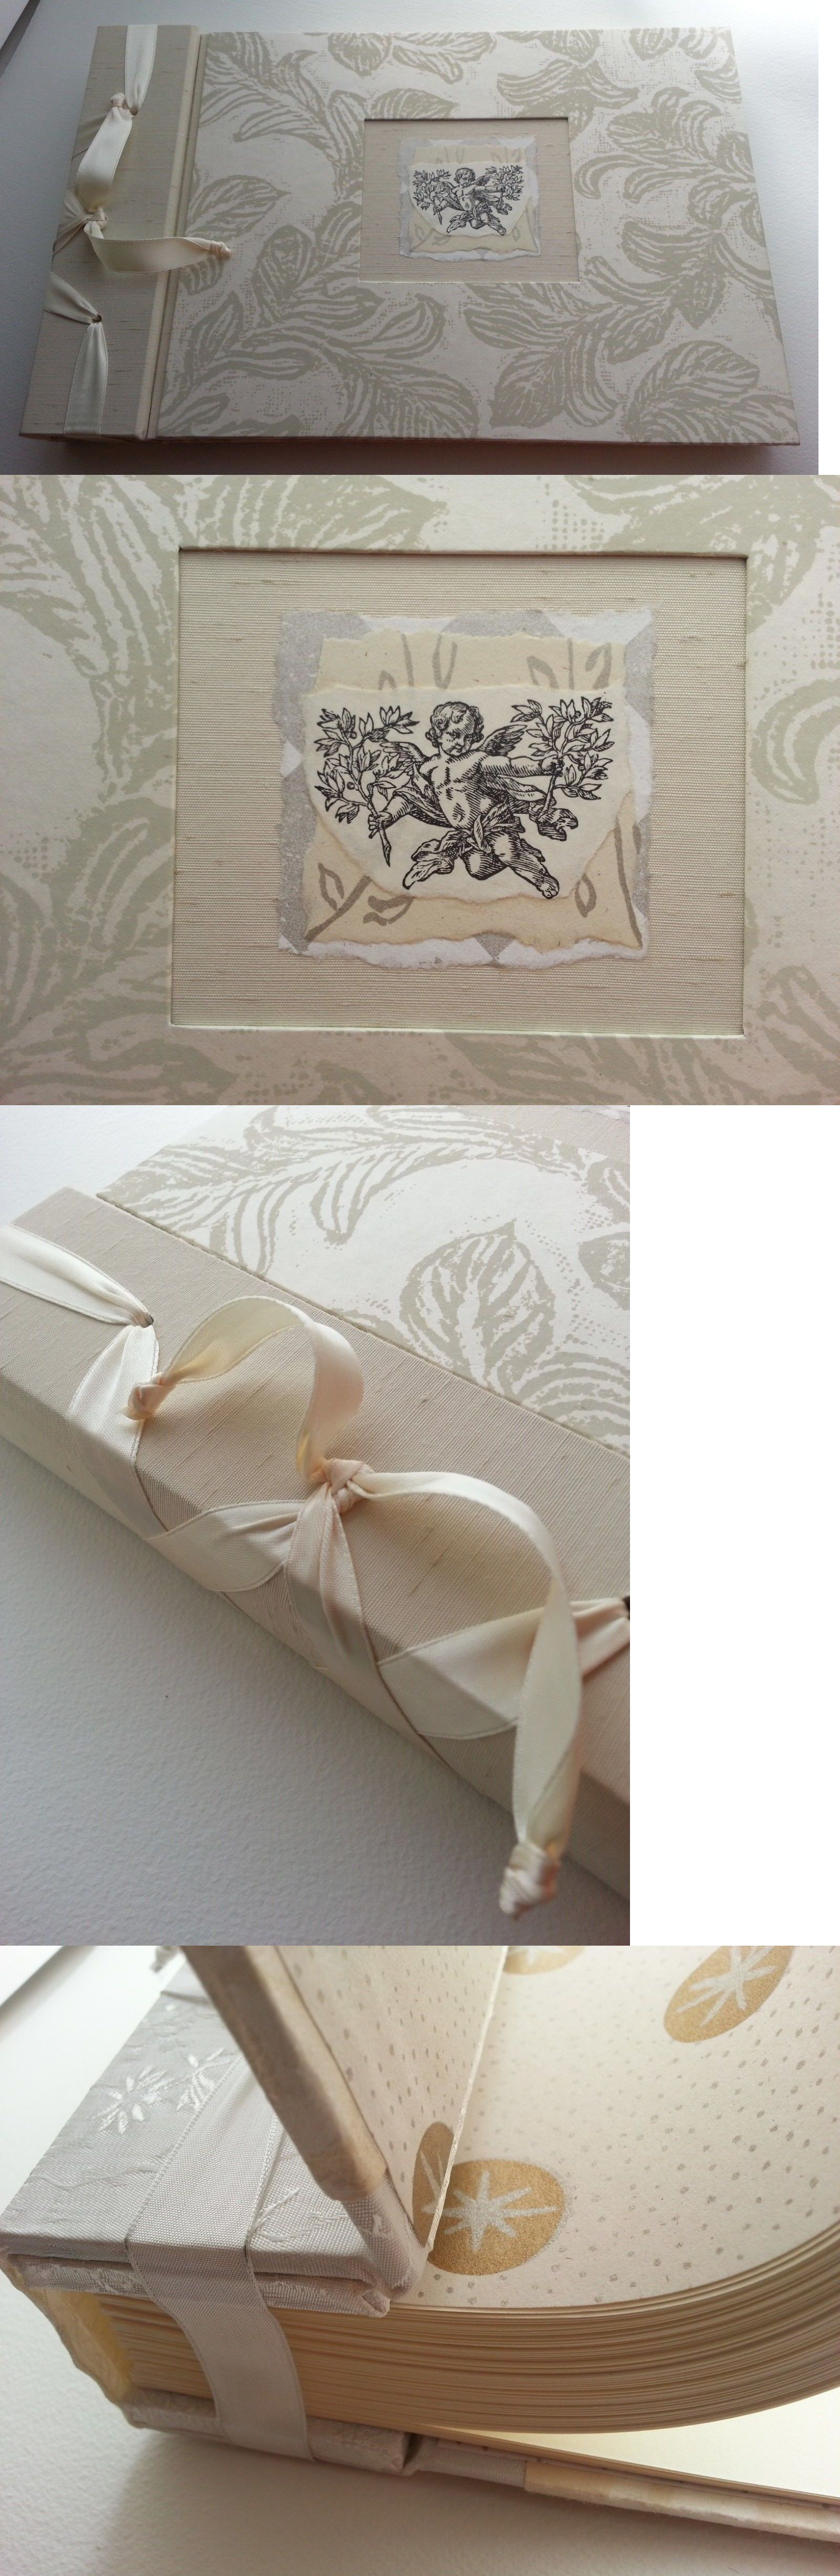 Guest Books and Pens 20940  Two Women Boxing Guest Wedding  Album  Handmade  Ribbon Bound Spine W Angel Inset -  BUY IT NOW ONLY   73 on  eBay  guest   books ... a333c2d3a3